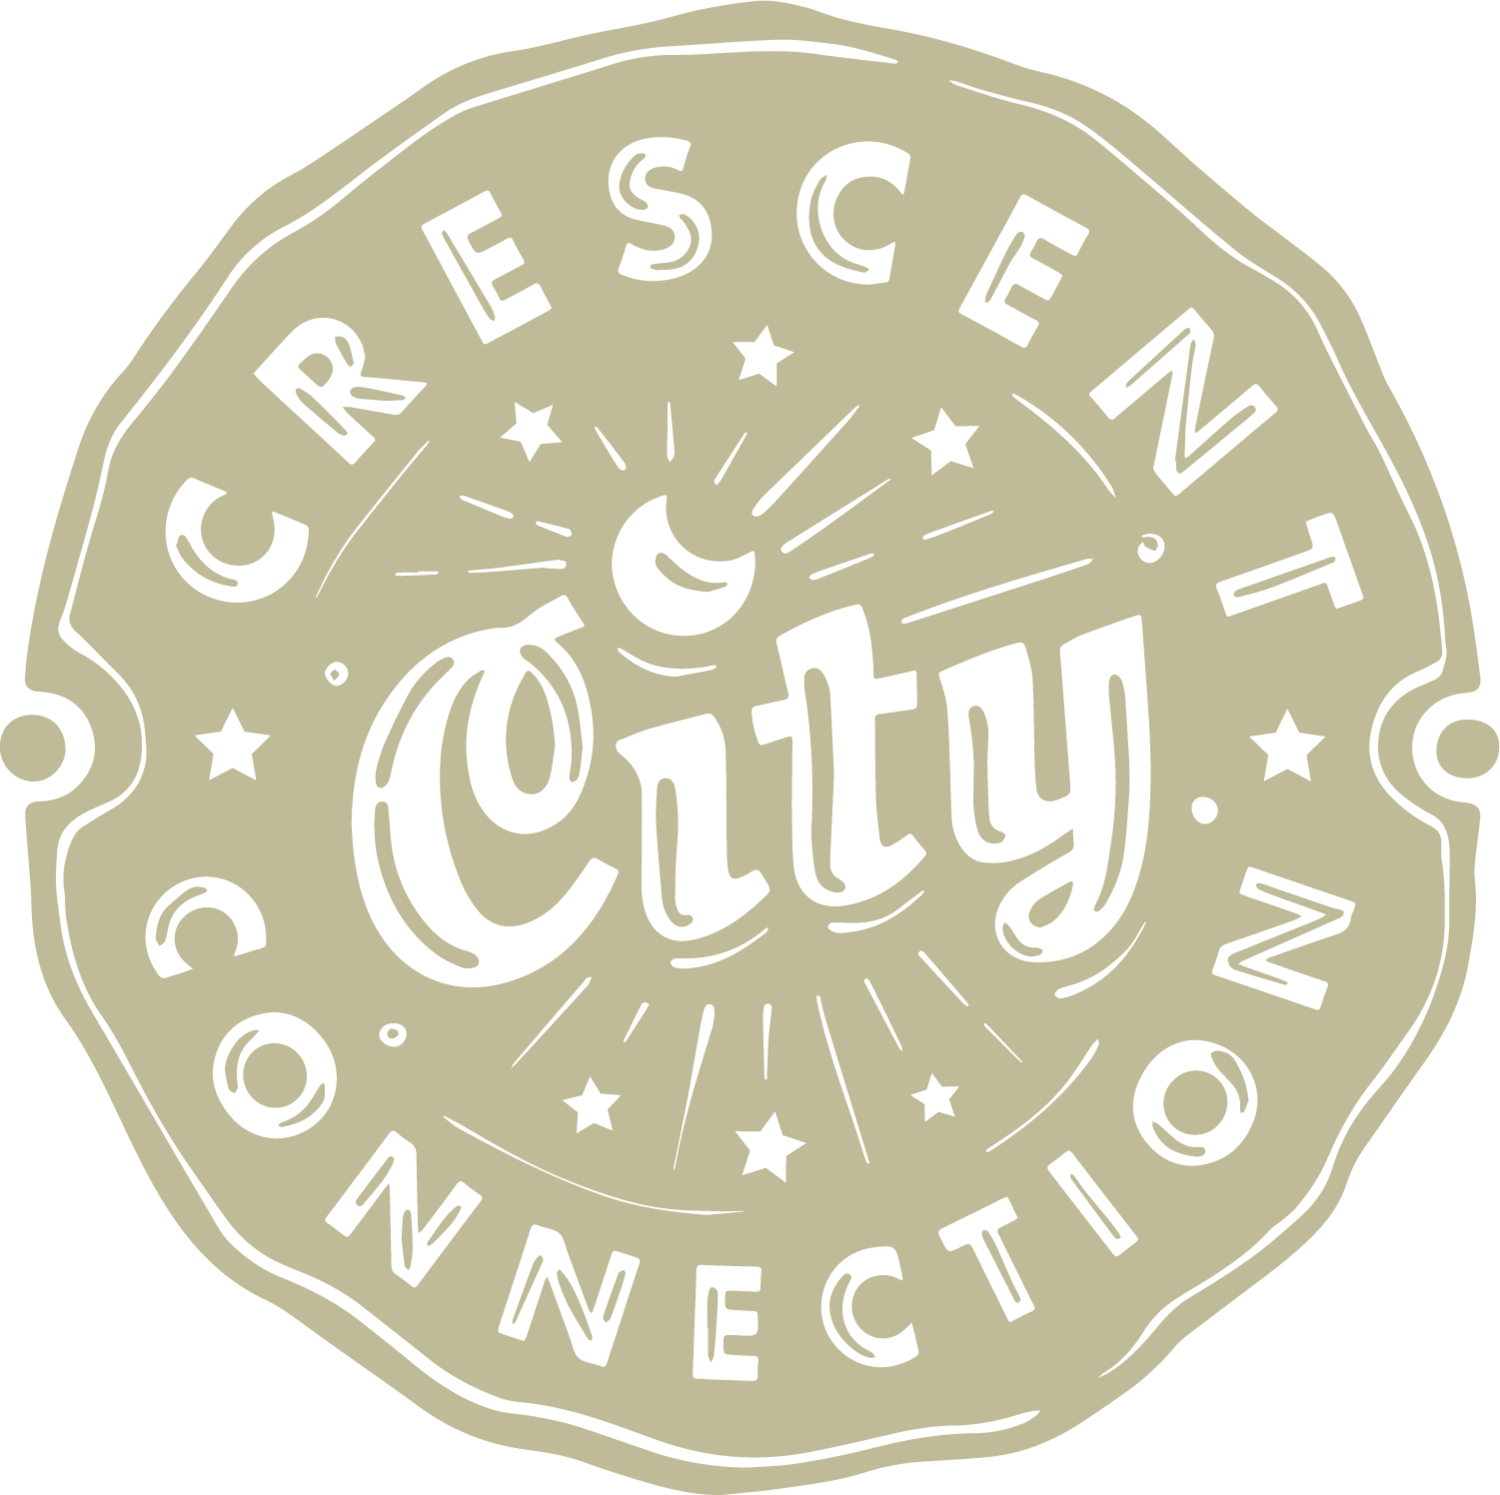 Crescent City Connection